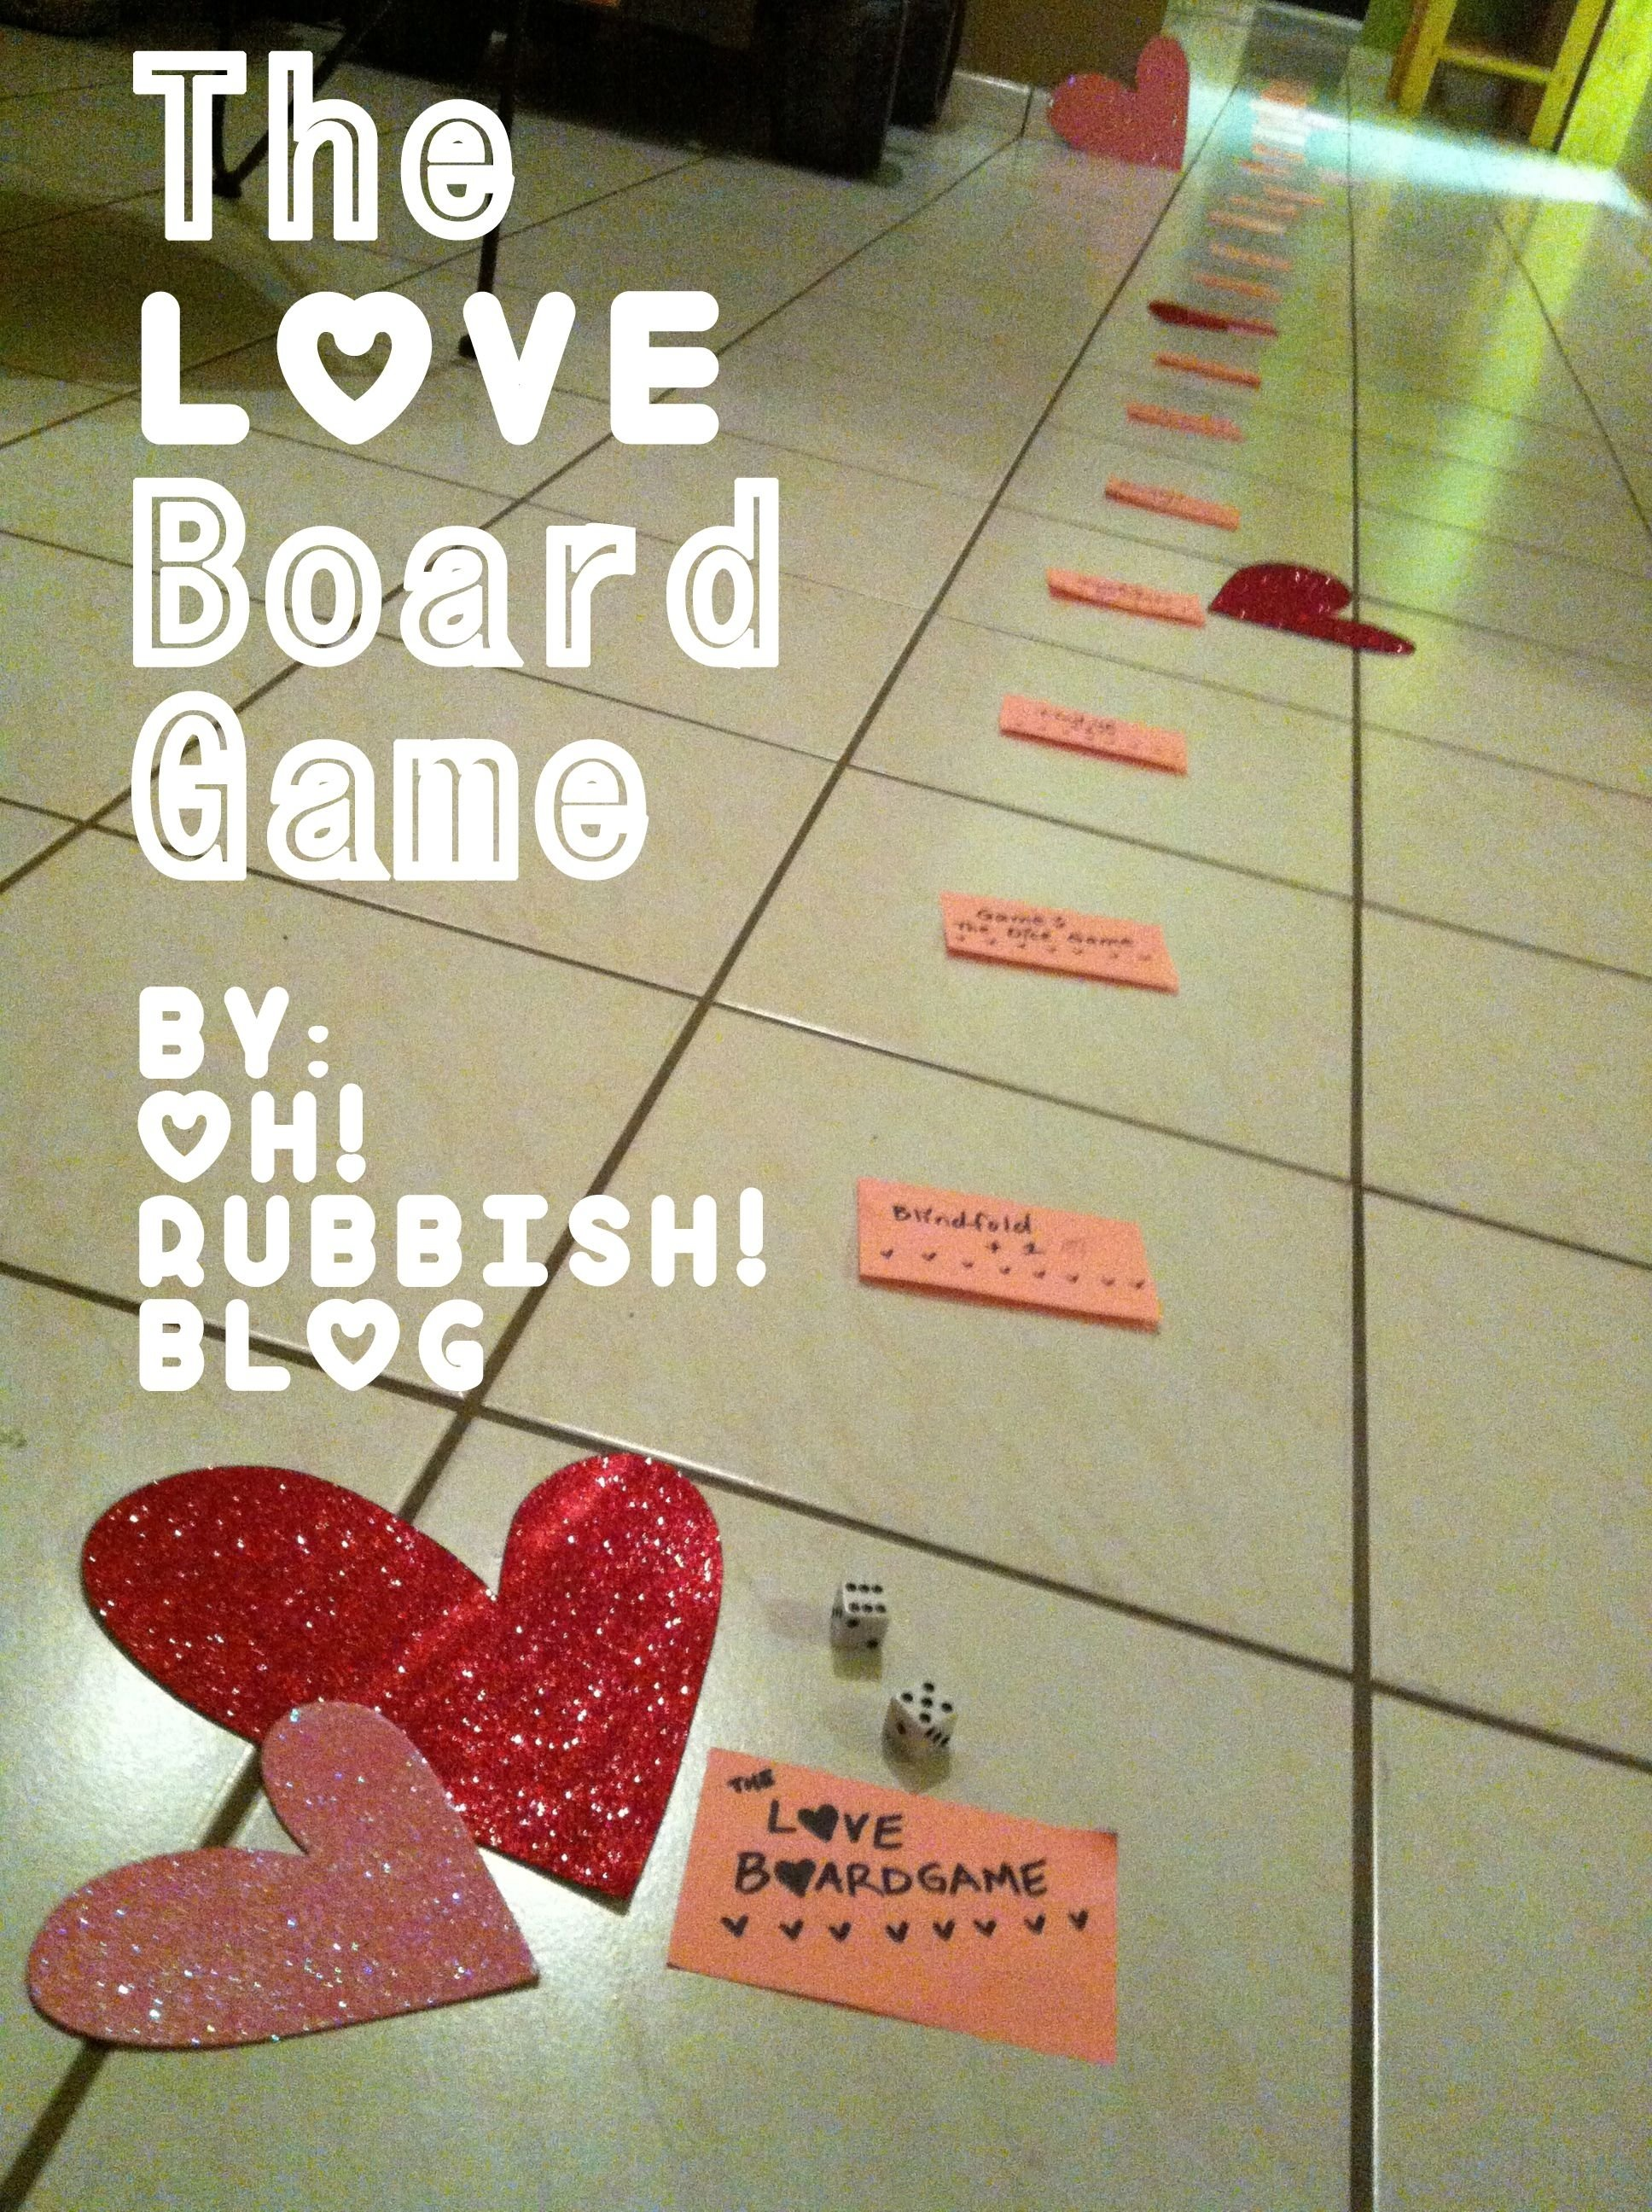 10 Pretty Valentines Day For Husband Ideas the love board game valentine game for couples valentine day 21 2020